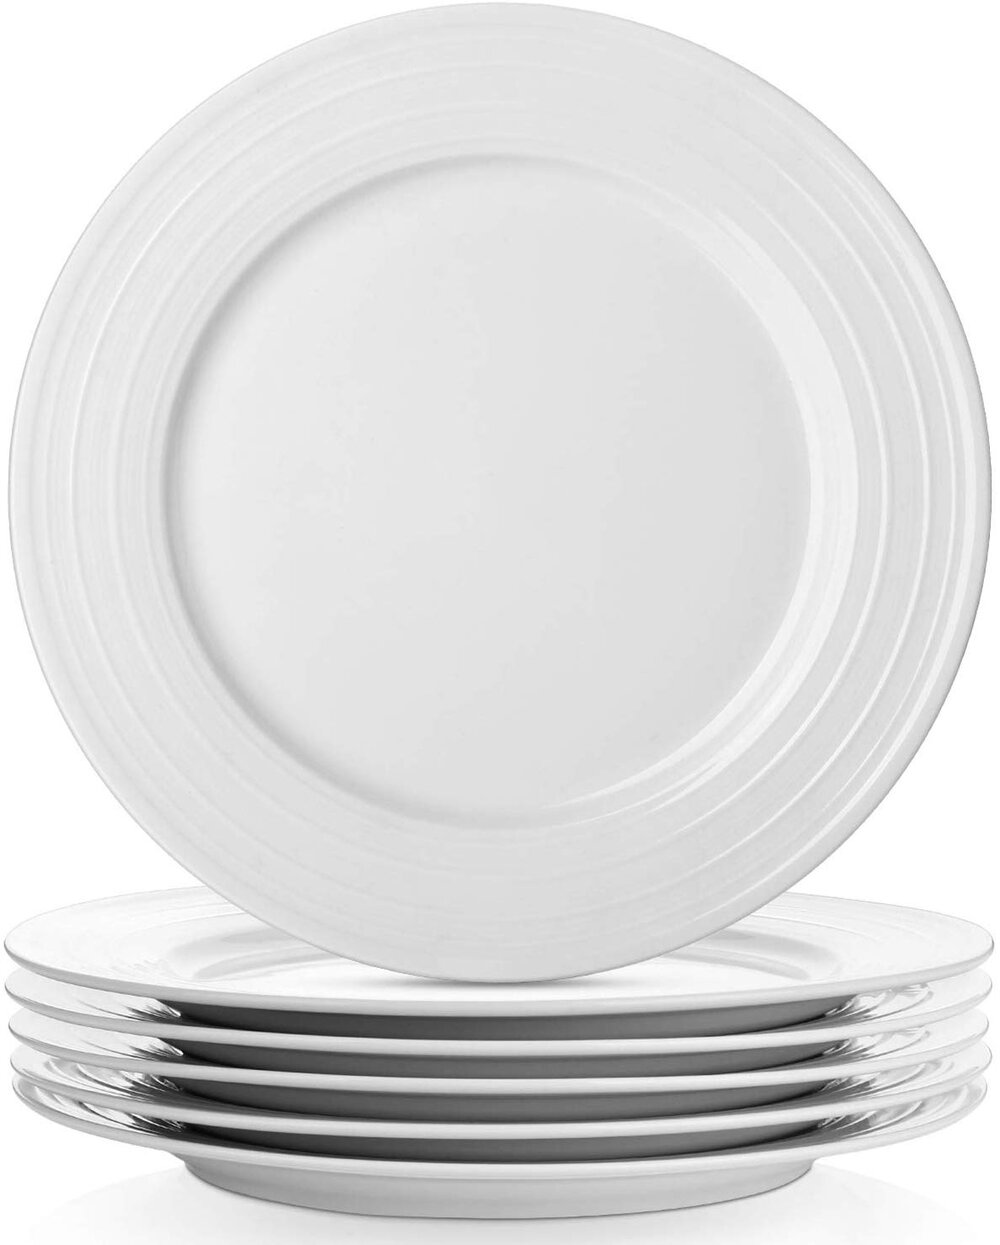 Simple White dinner plates with a striped ring detail for a modern thanksgiving or chritmas table setting.jpg